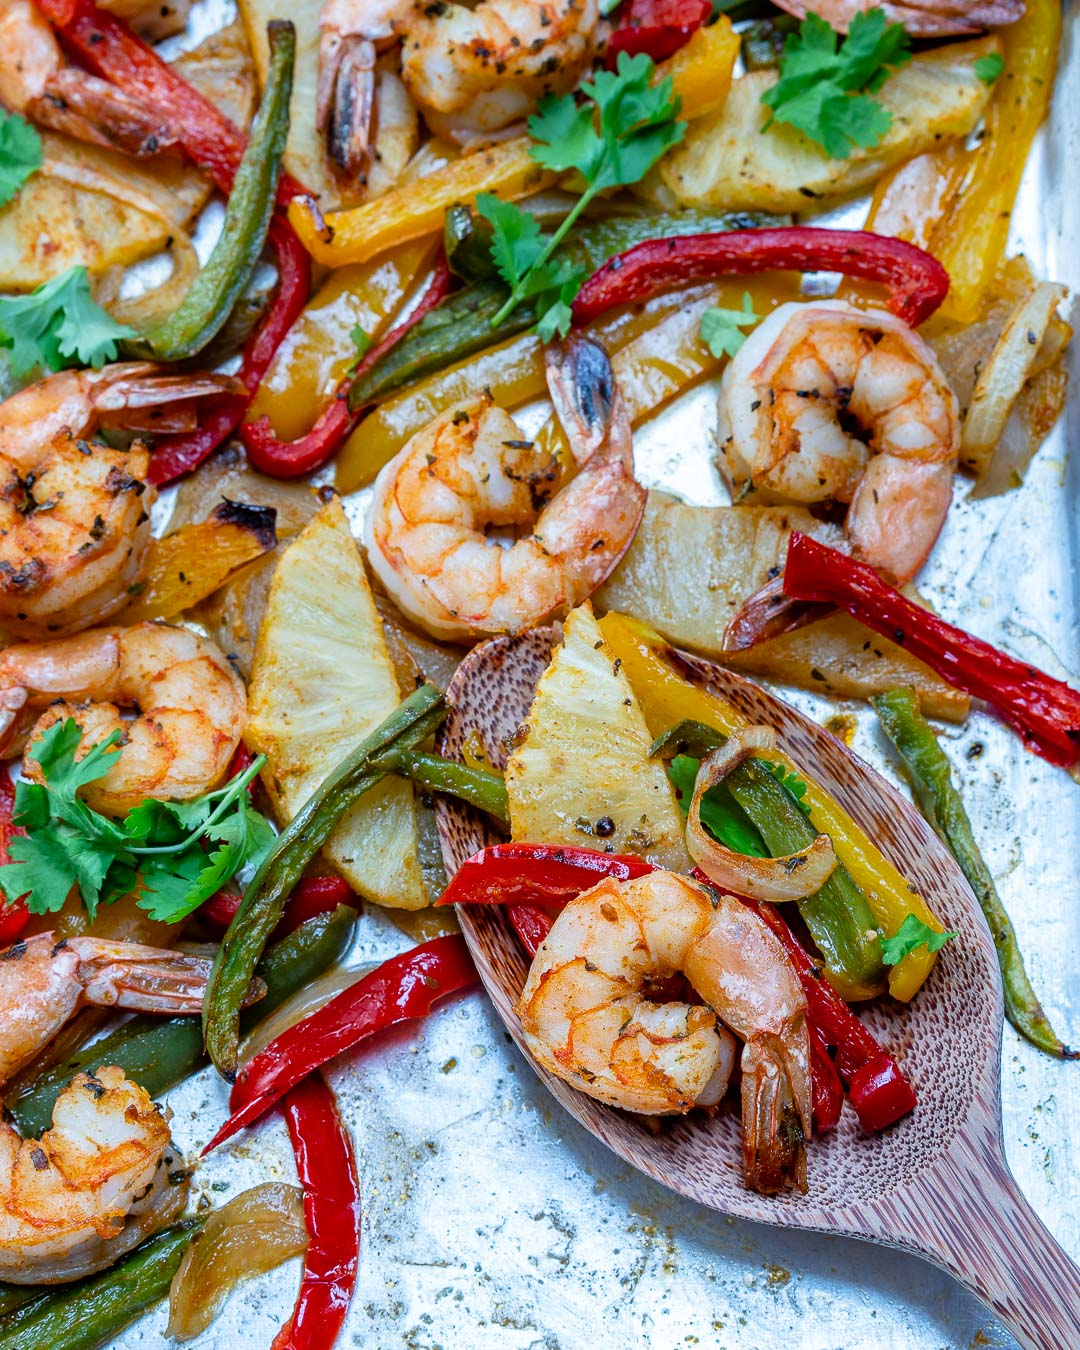 CleanFoodCrush Sheet Pan Pineapple Shrimp Fajitas Recipe